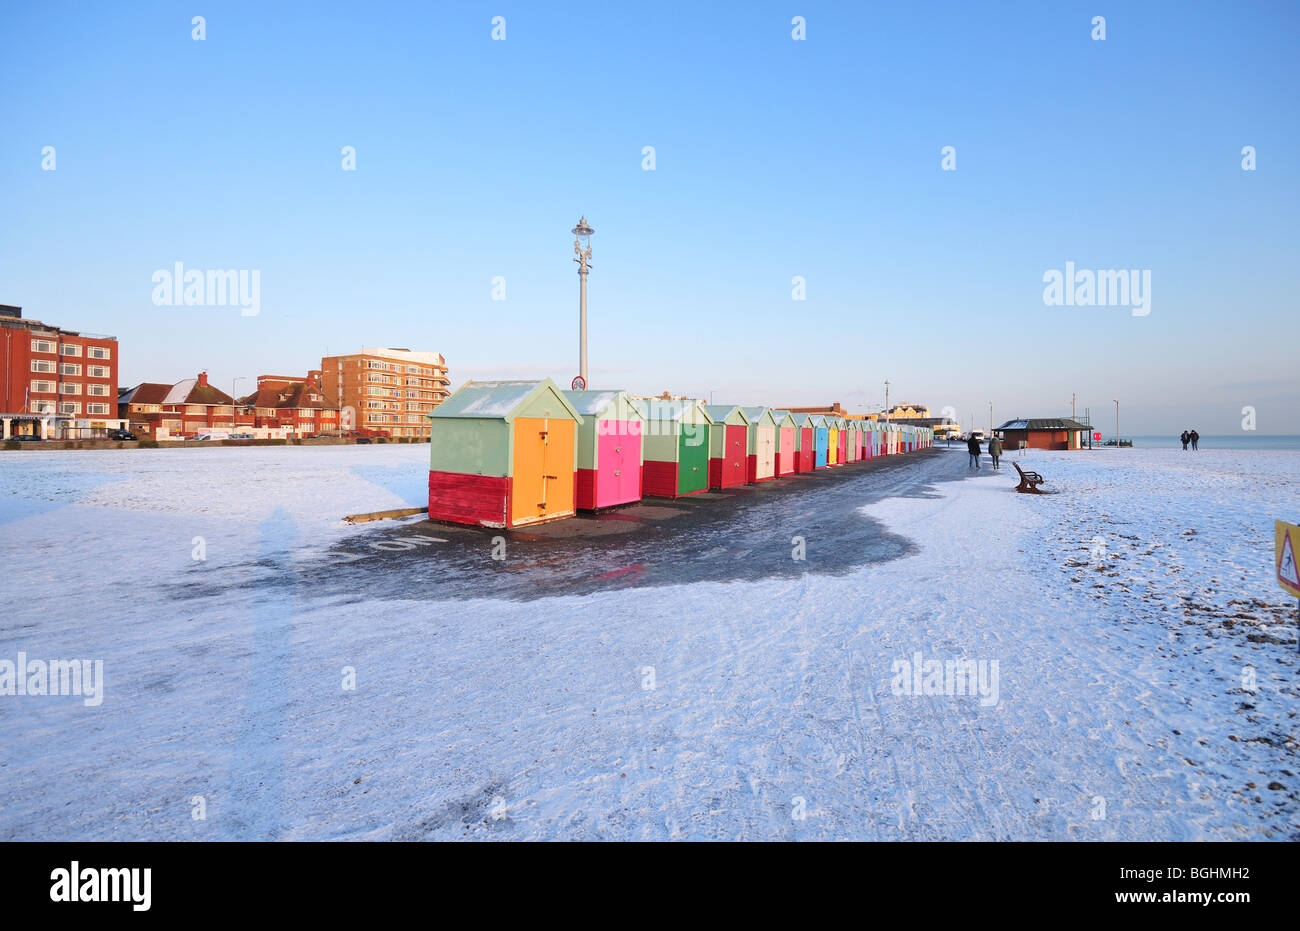 Snow on seafront - Brighton and Hove, East Sussex - Stock Image